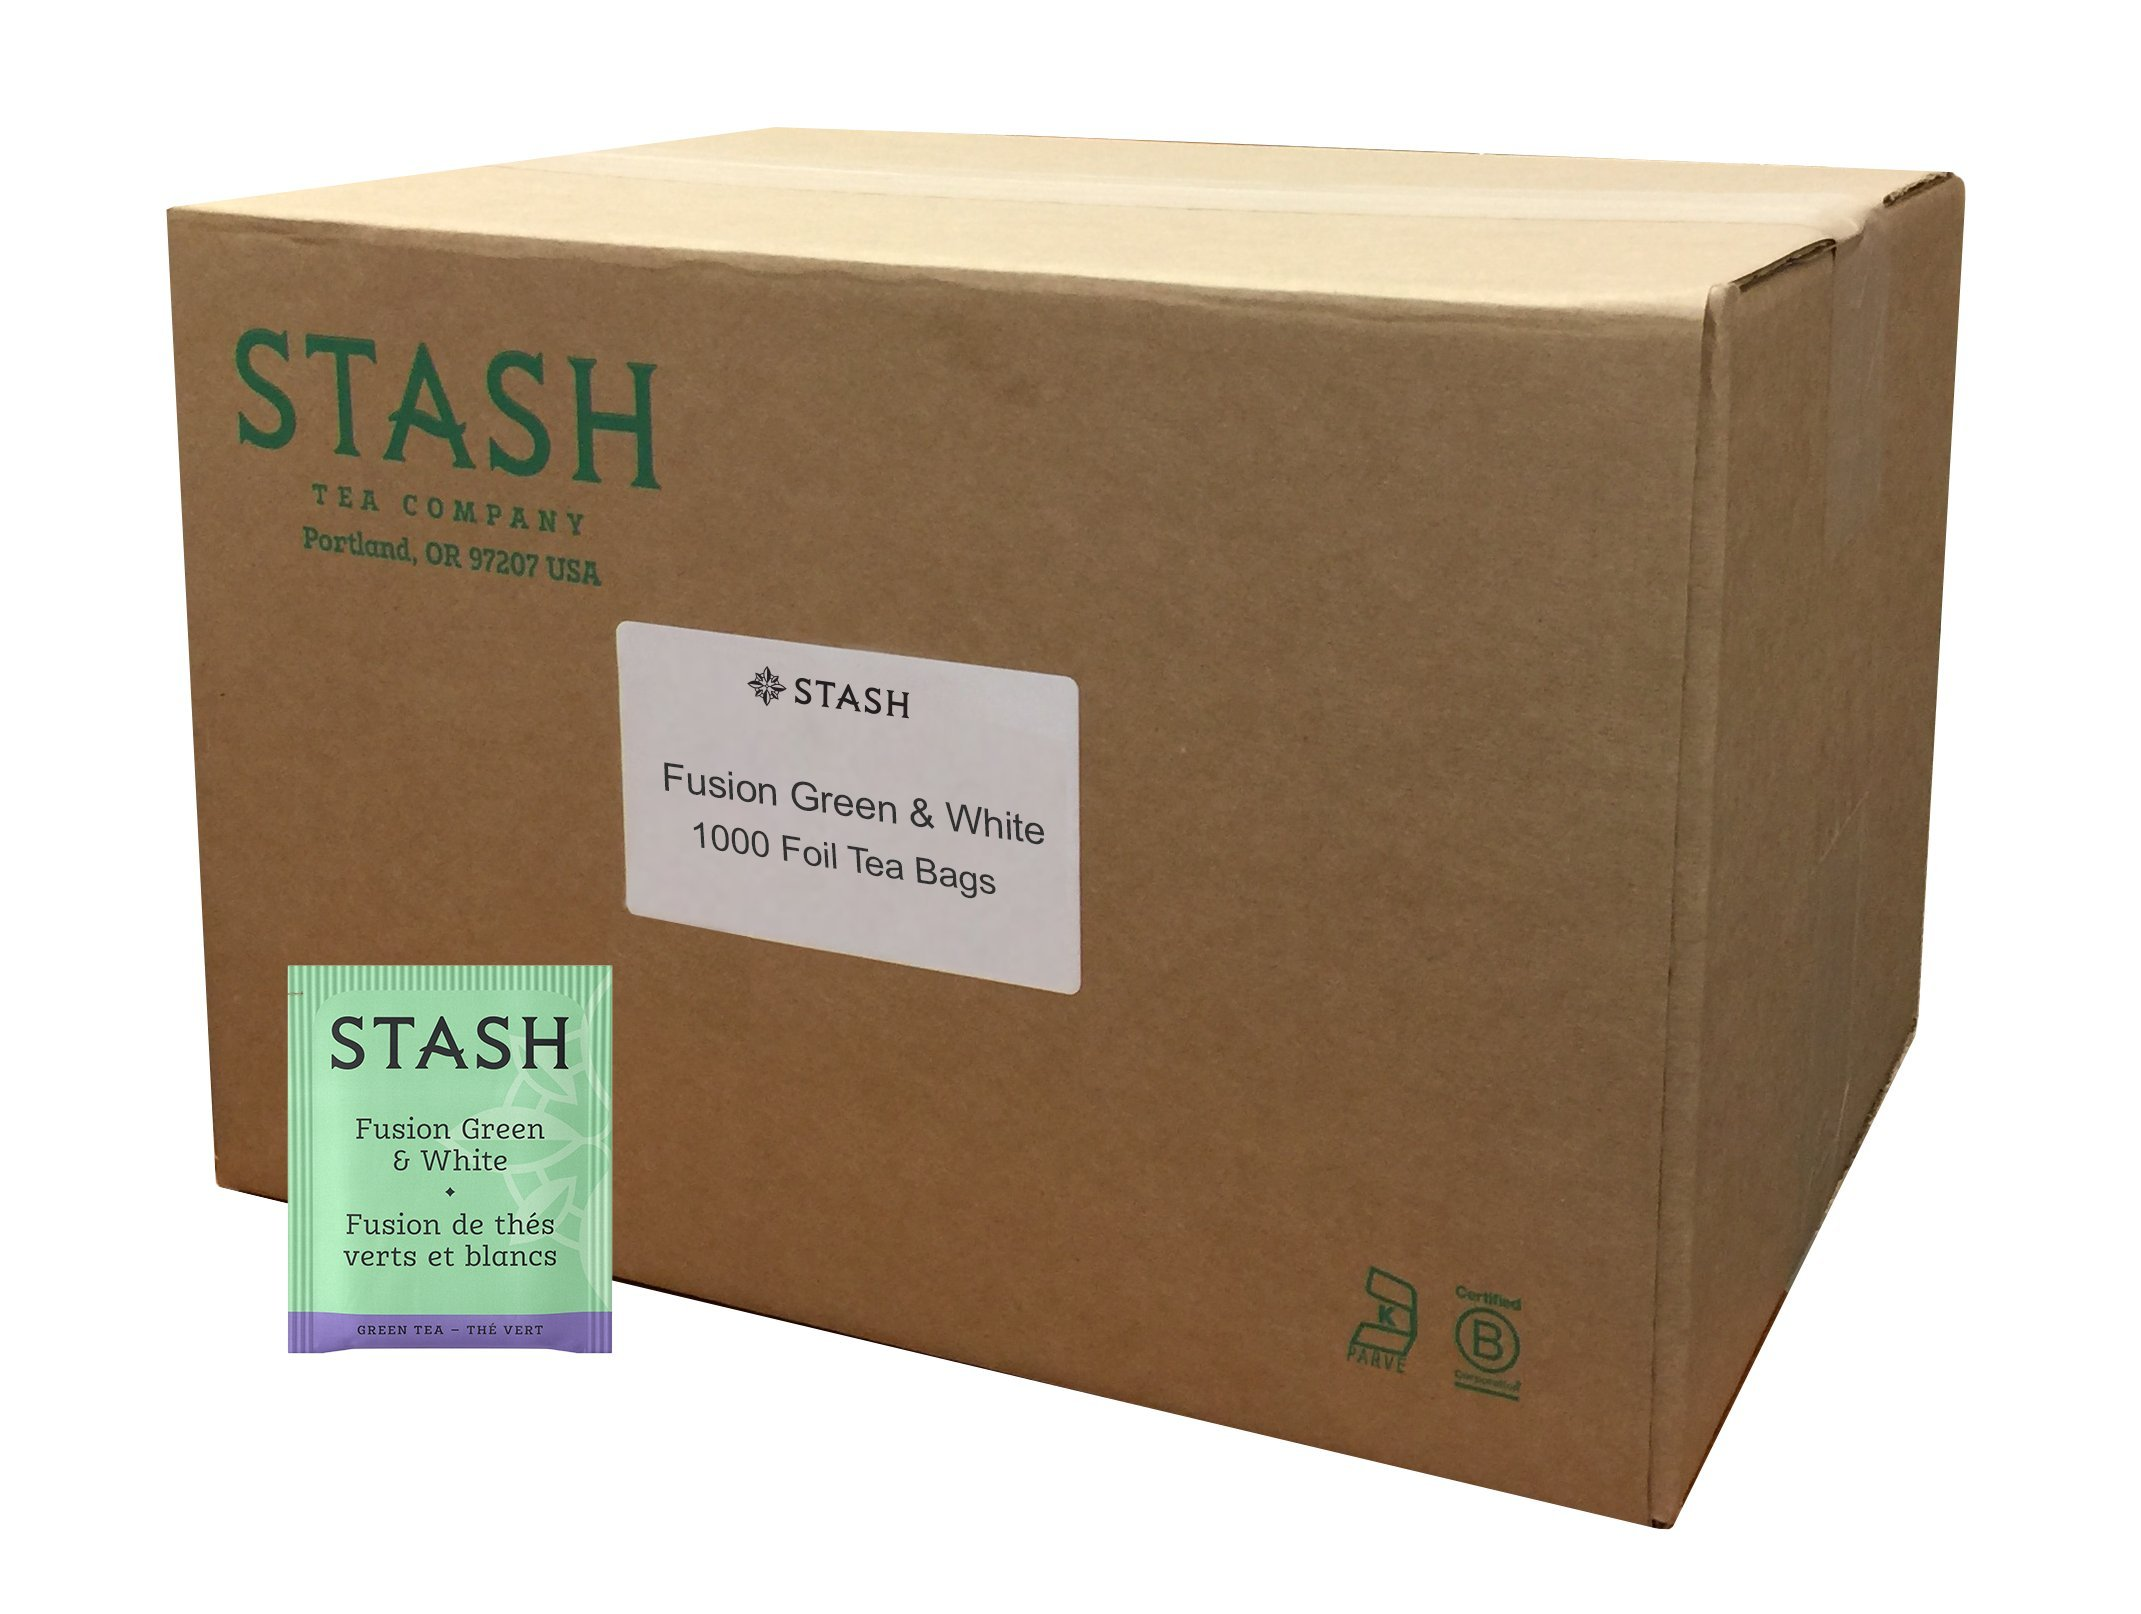 Stash Tea Fusion Green & White Tea 1000 Count Tea Bags in Foil (Packaging May Vary) Individual Tea Bags for Use in Teapots Mugs or Cups, White Tea and Green Tea, Brew Hot or Iced by Stash Tea (Image #1)